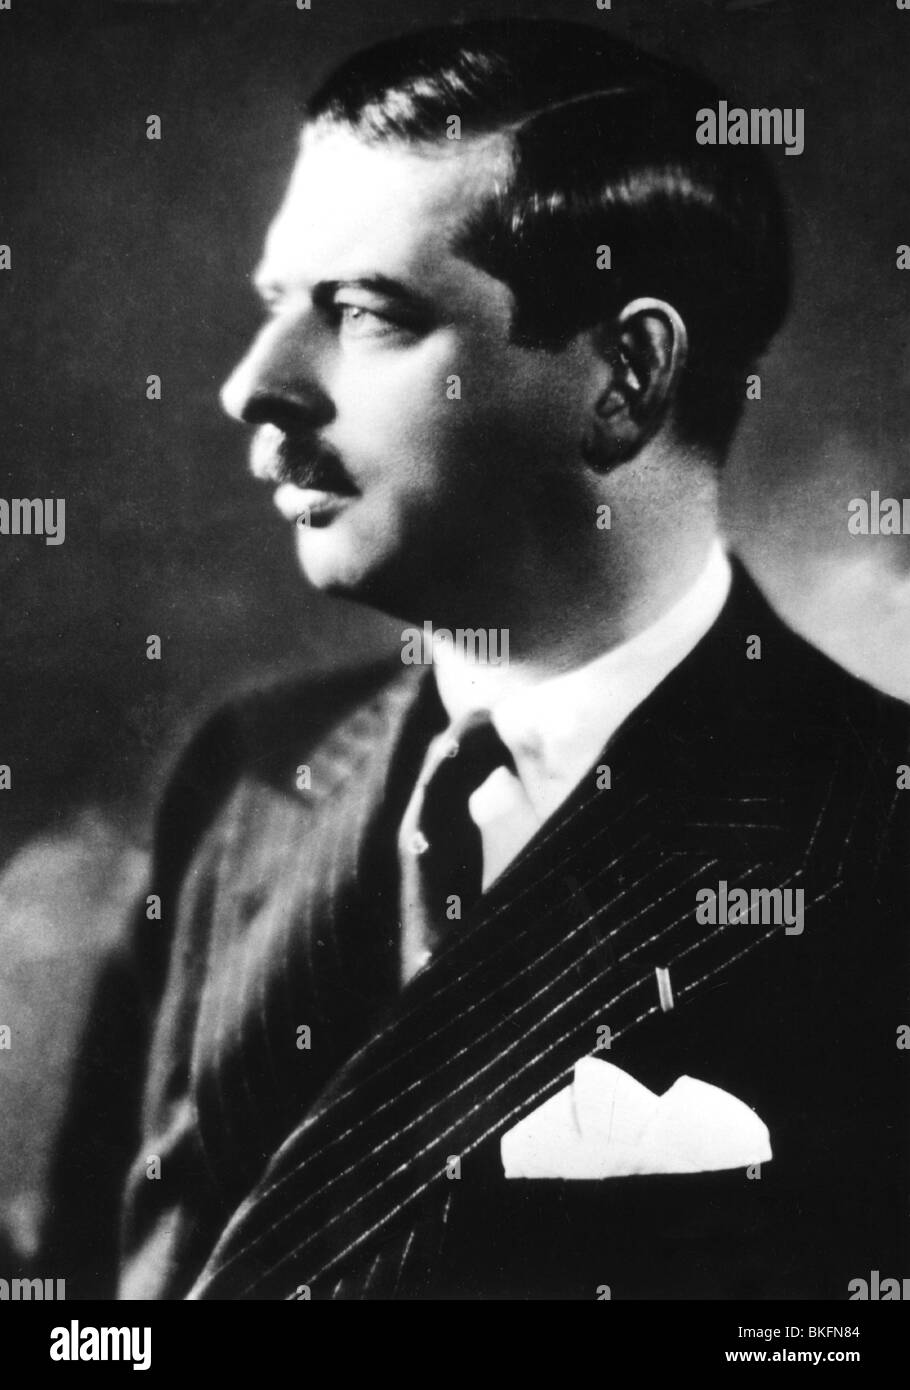 Carol II of Romania, 15.10.1893 - 4.4. 1953, King of Romania 8.6.1930 - 6.9.1940, portrait, 1930s, Additional-Rights - Stock Image